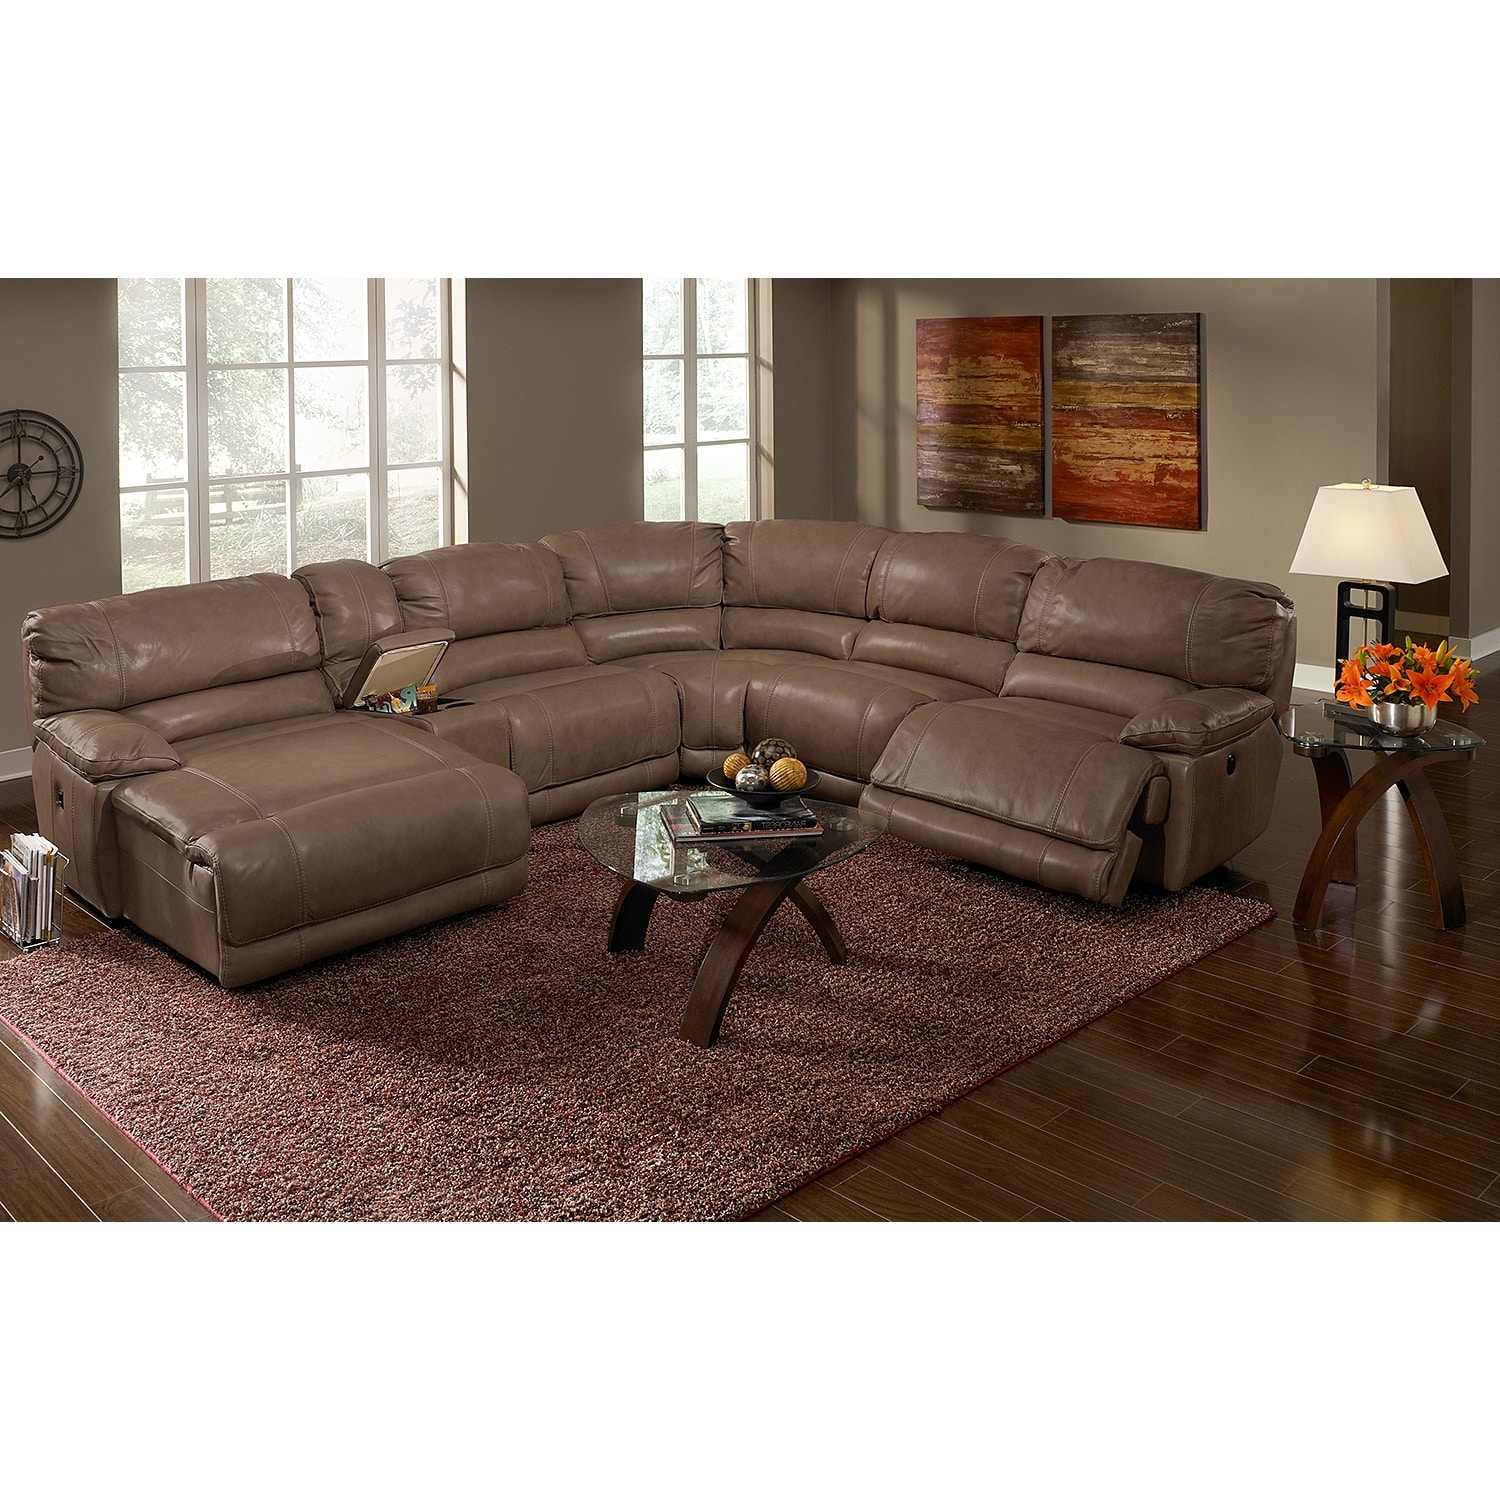 St malo ii 6 pc power reclining sectional reverse for 6 pc sectional living room